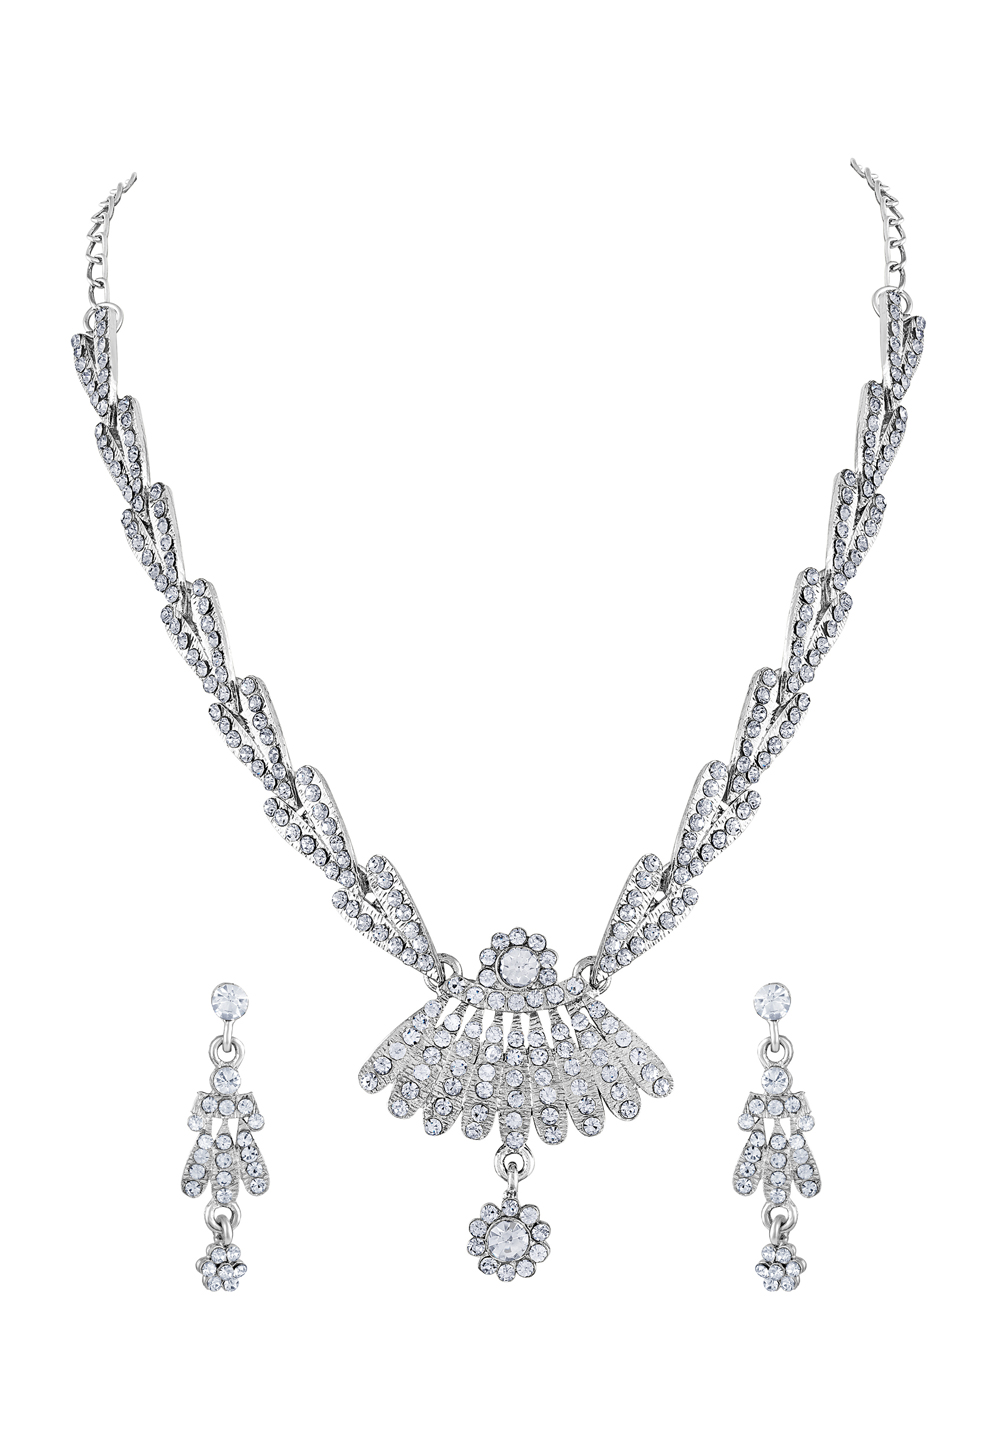 Silver Zinc Necklace Set With Earrings 191921